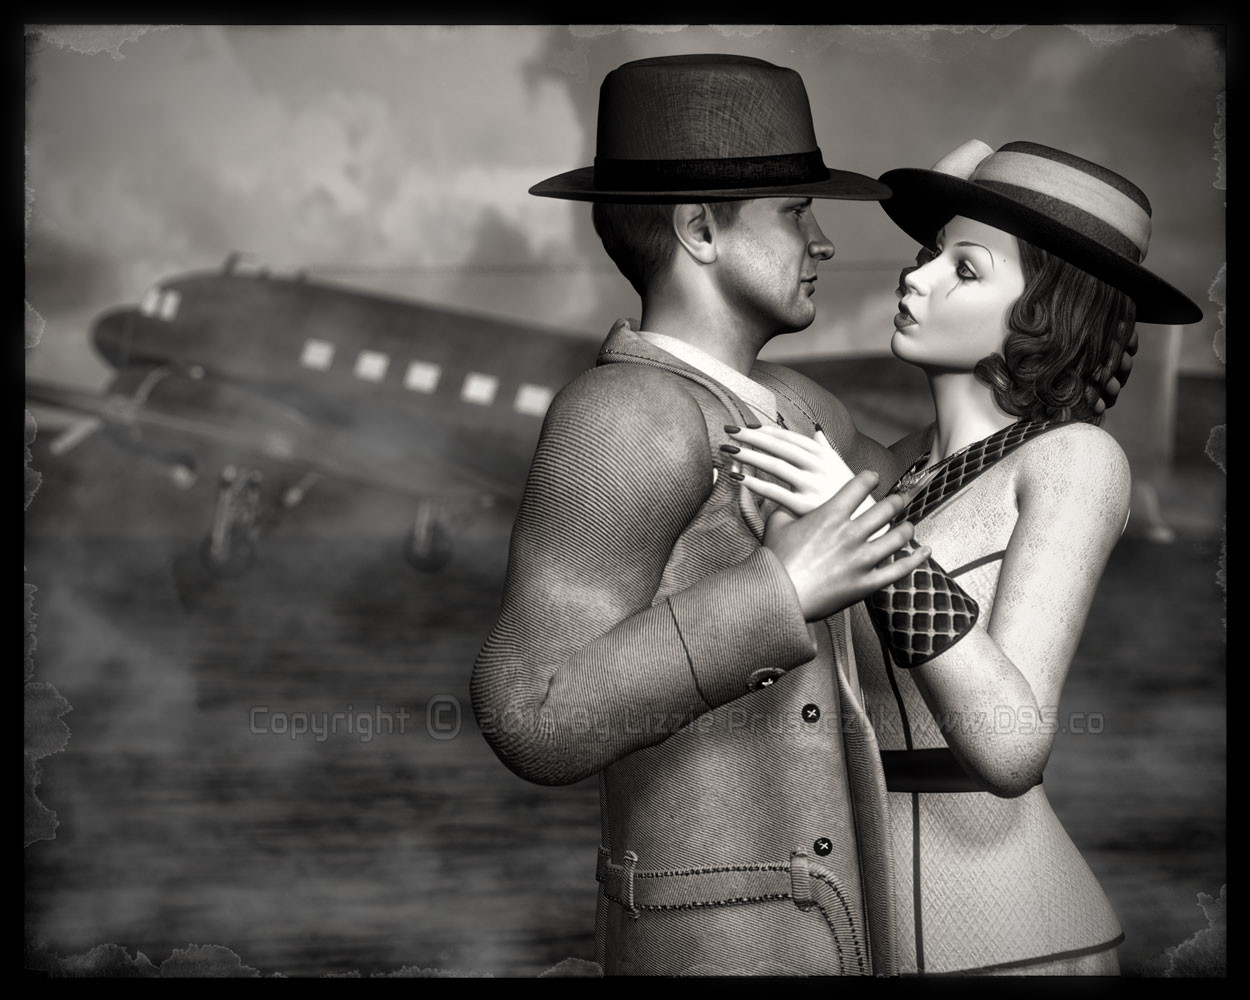 A film noir style artwork of a love-struck couple saying goodbye that was inspired by a classic movie.